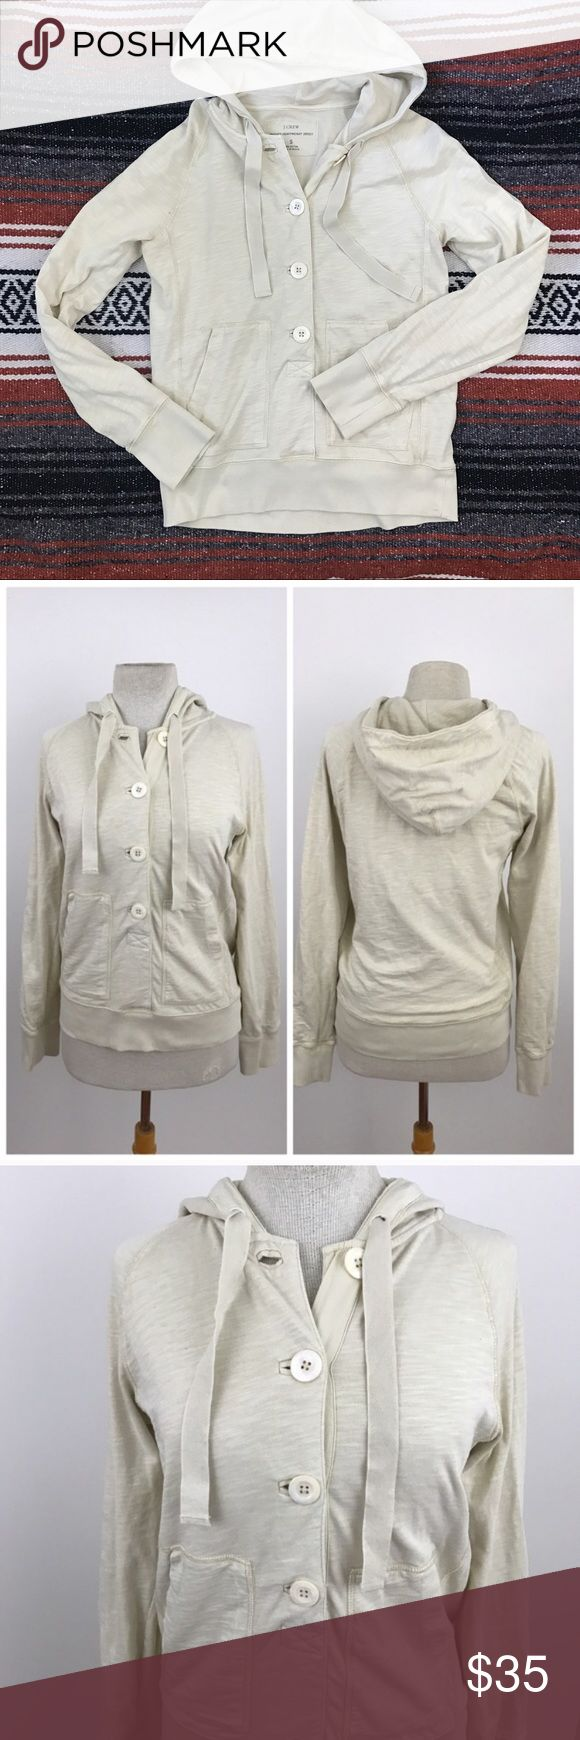 "J.Crew Washed Heavyweight Jersey Hooded Sweatshirt Oatmeal colored lined pullover hoodie from J.Crew. Heavyweight jersey fabric. 100% cotton. Perfect for cold nights !  Size small, Sleeve length 31"" Armpit to armpit 19"" Length 23""   **I list on multiple platforms, make me an offer before this listing is gone!**   Now accepting offers on bundles ! One low shipping rate no matter how many pieces are bundled 💕 J. Crew Tops Sweatshirts & Hoodies"